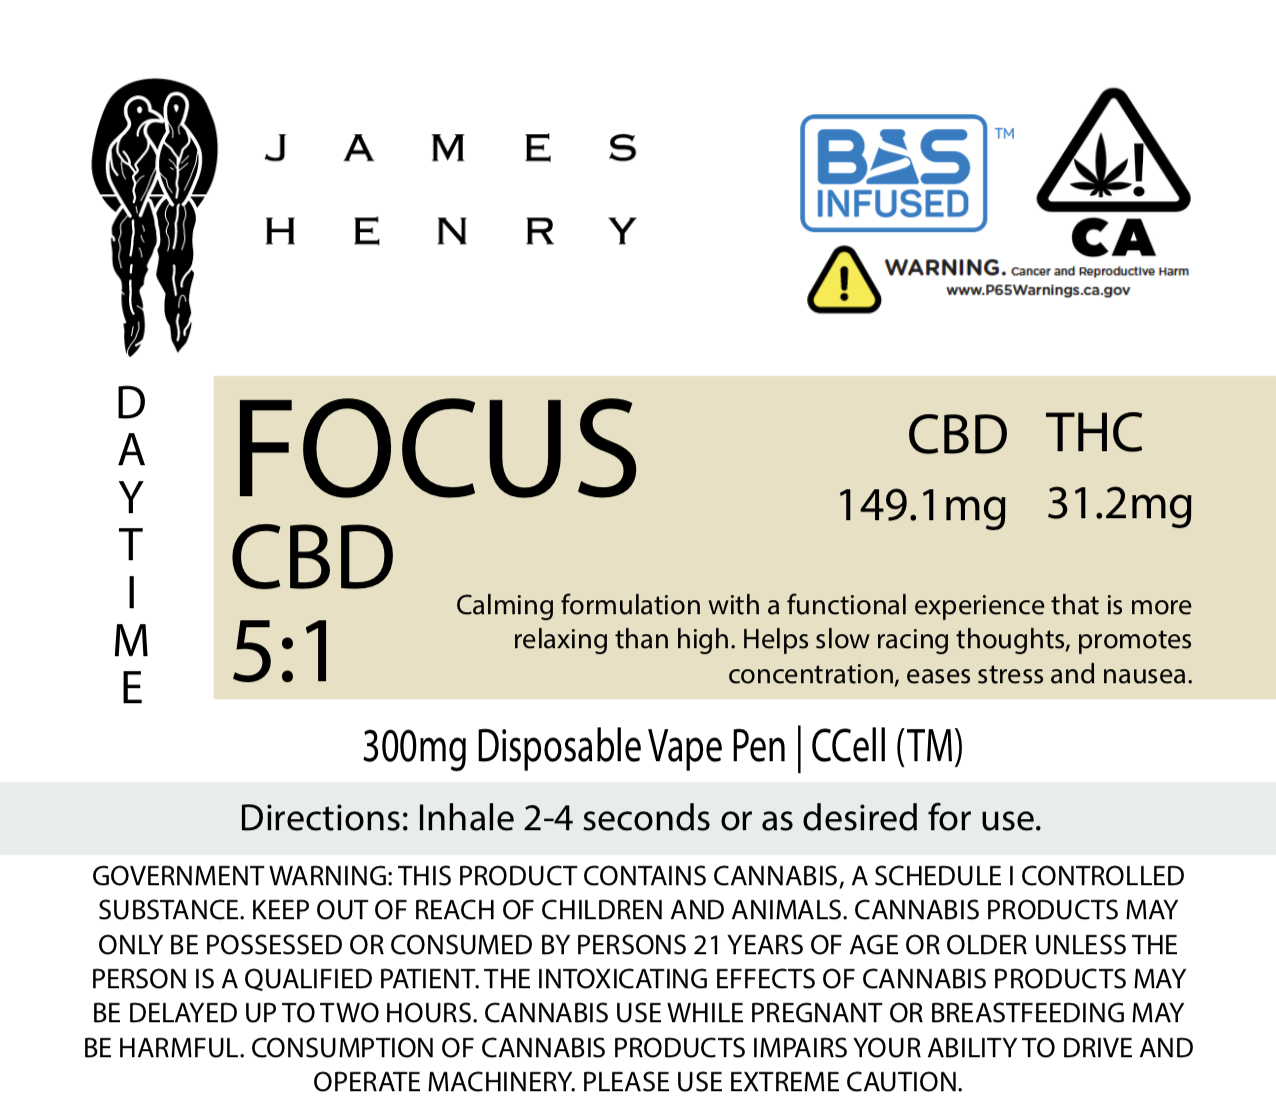 Daytime: Focus 5:1 CBD to THC - Ideal formulation for new consumer experiences, anxiety relief, and focus.High CBD formulation with accompanying THC and terpene profiles that give full functional experience to enable activity and task execution.Patients and Customers Have Noted Relief from the Following:-Anger Management-Anxiety/Anxious Thoughts-Hang Overs-Menstrual Pains-Nausea-Nerve Pain